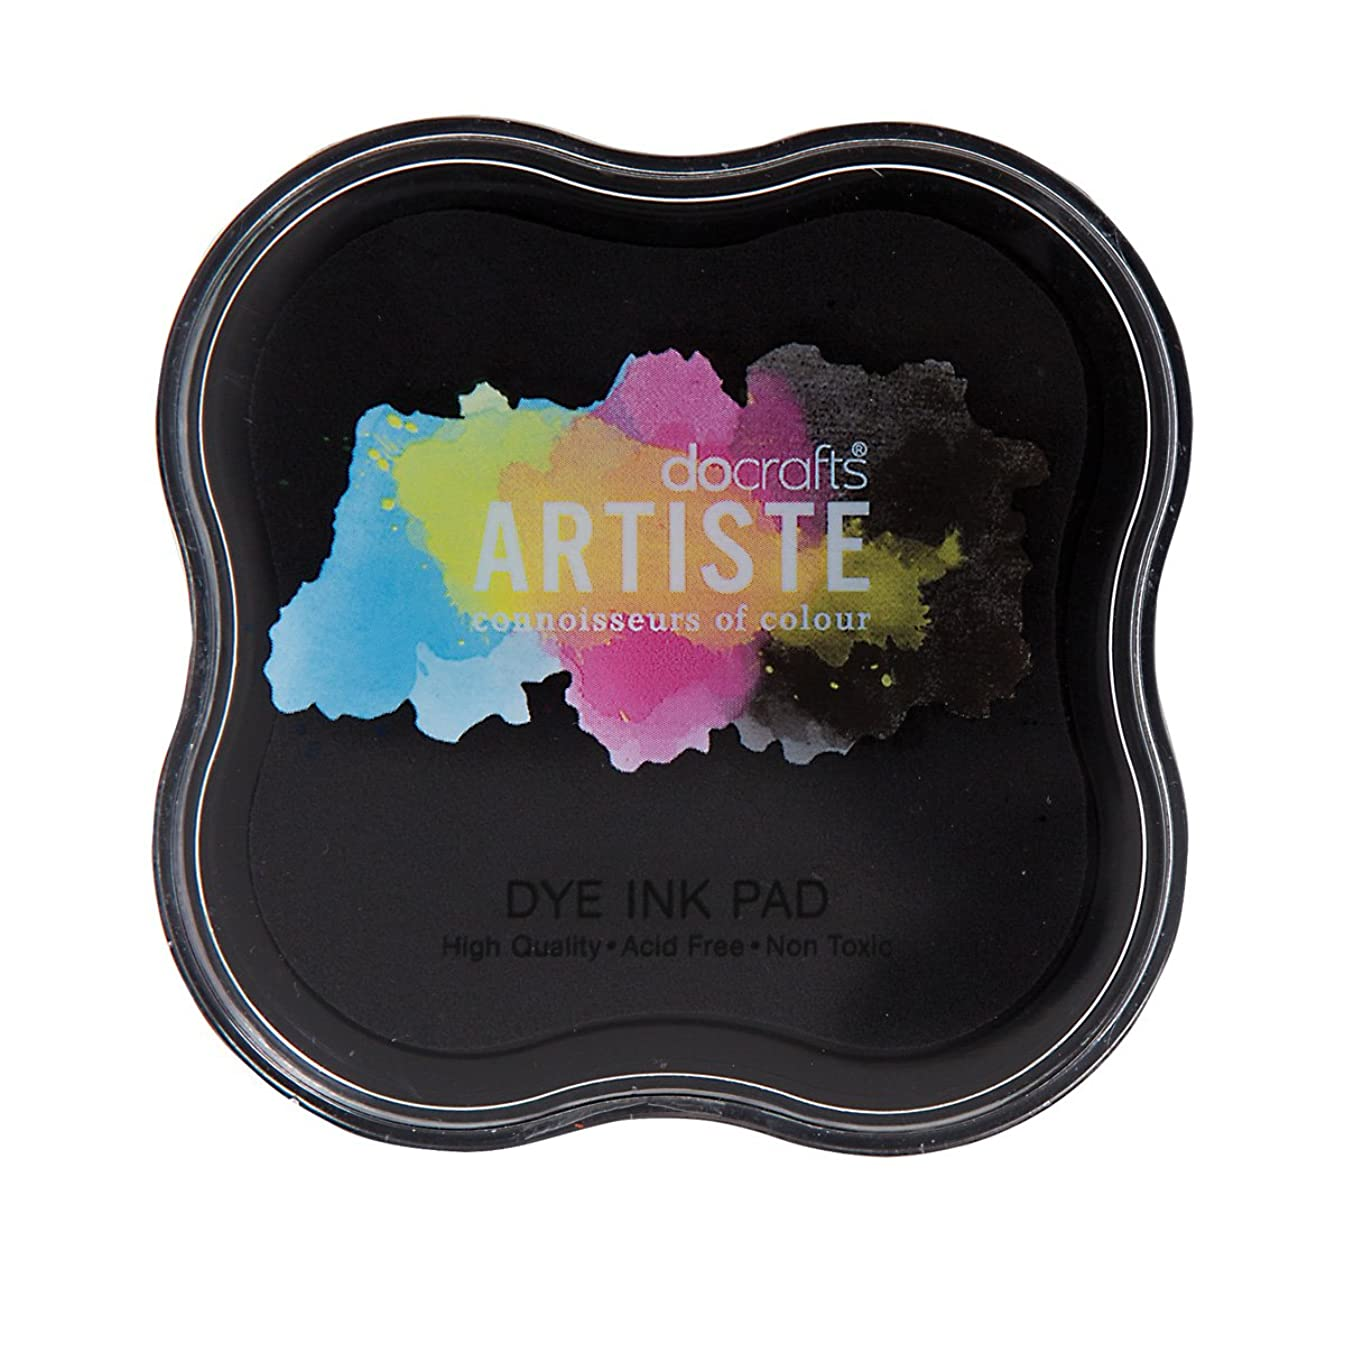 DOCrafts Artiste Dye Ink Pad, Black